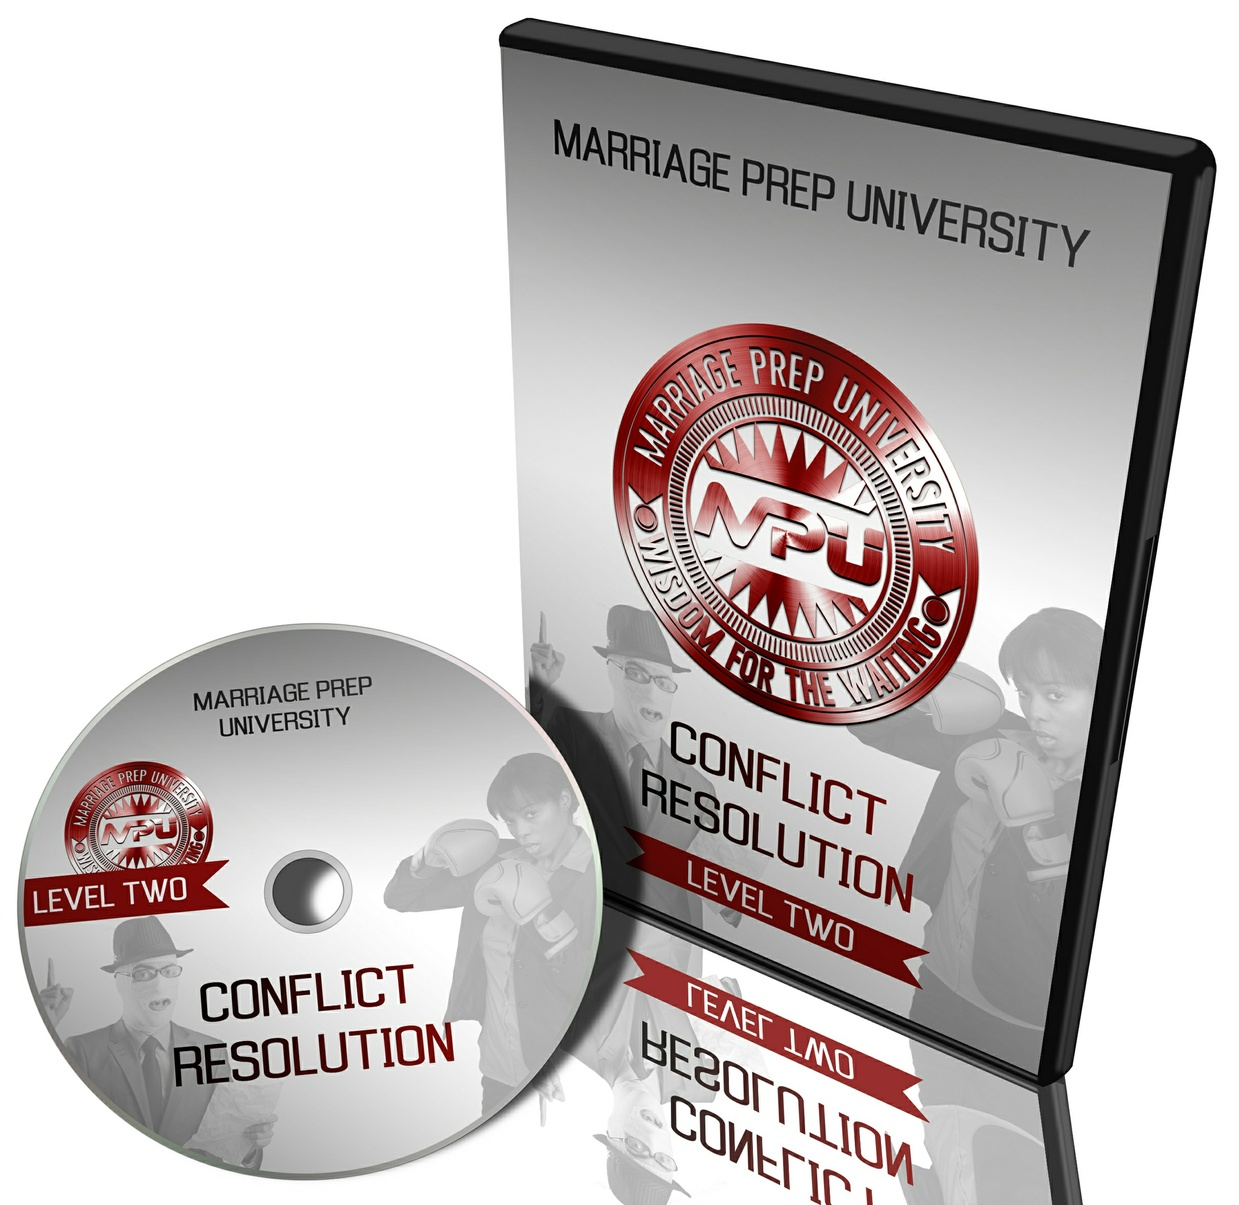 MPU (Level Two): Conflict Resolution